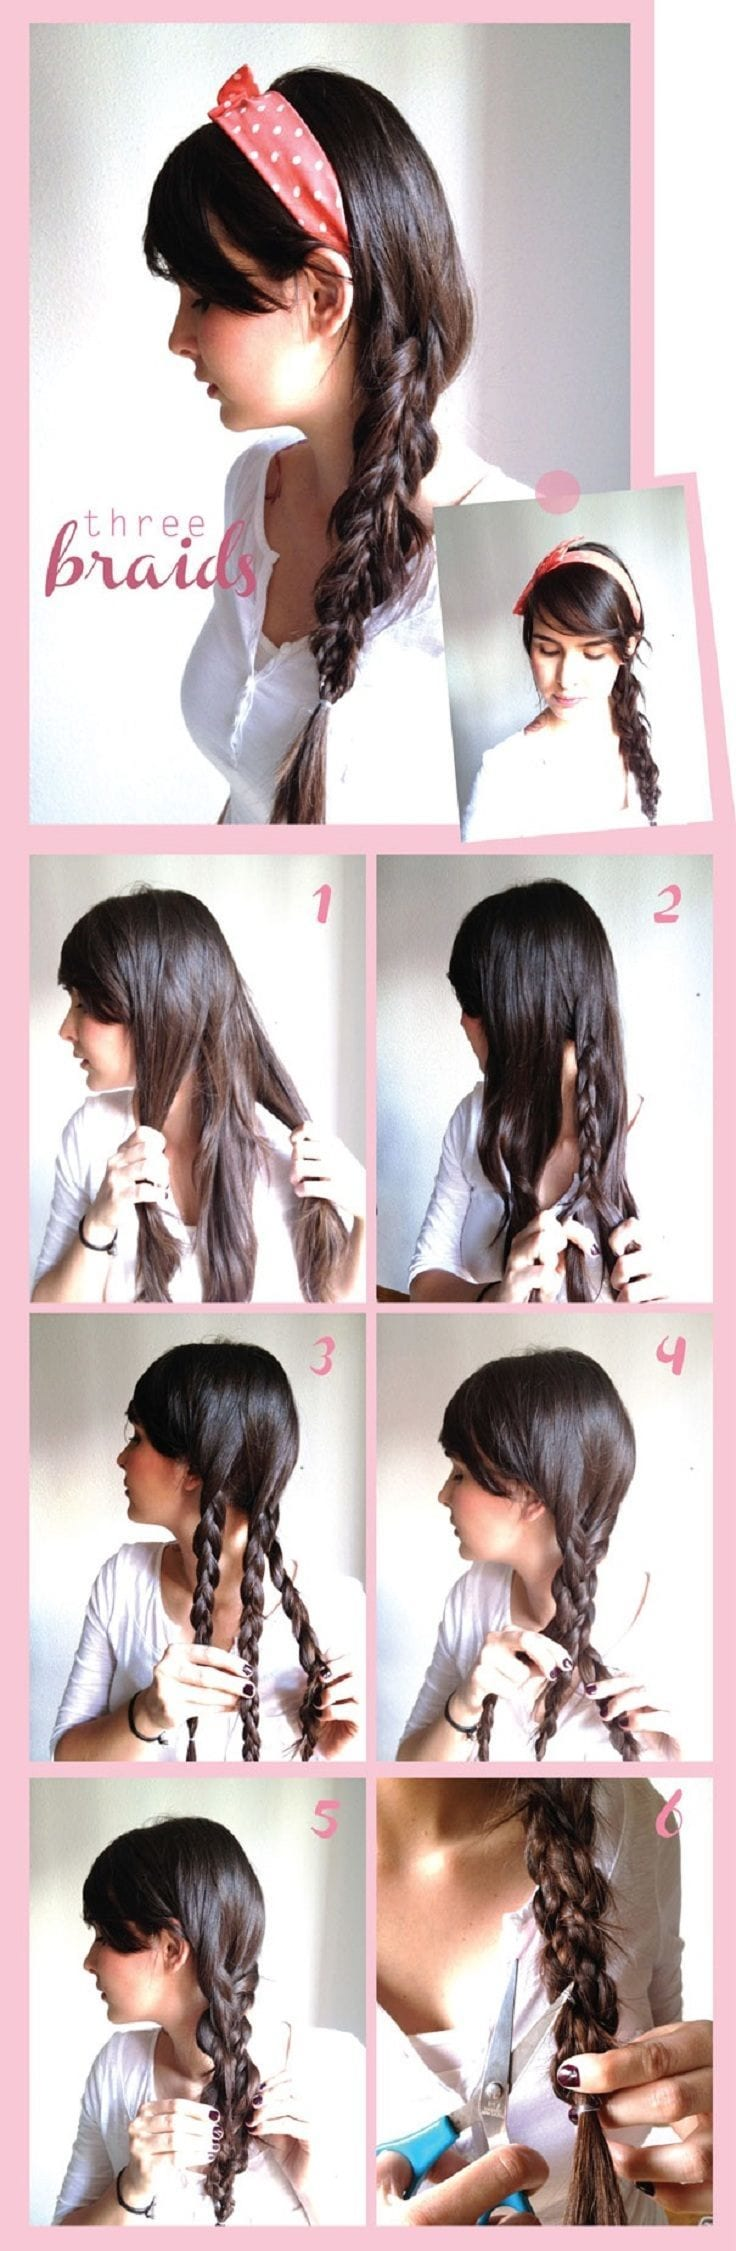 Enjoyable 20 Cute And Easy Braided Hairstyle Tutorials Latest Styles Short Hairstyles For Black Women Fulllsitofus